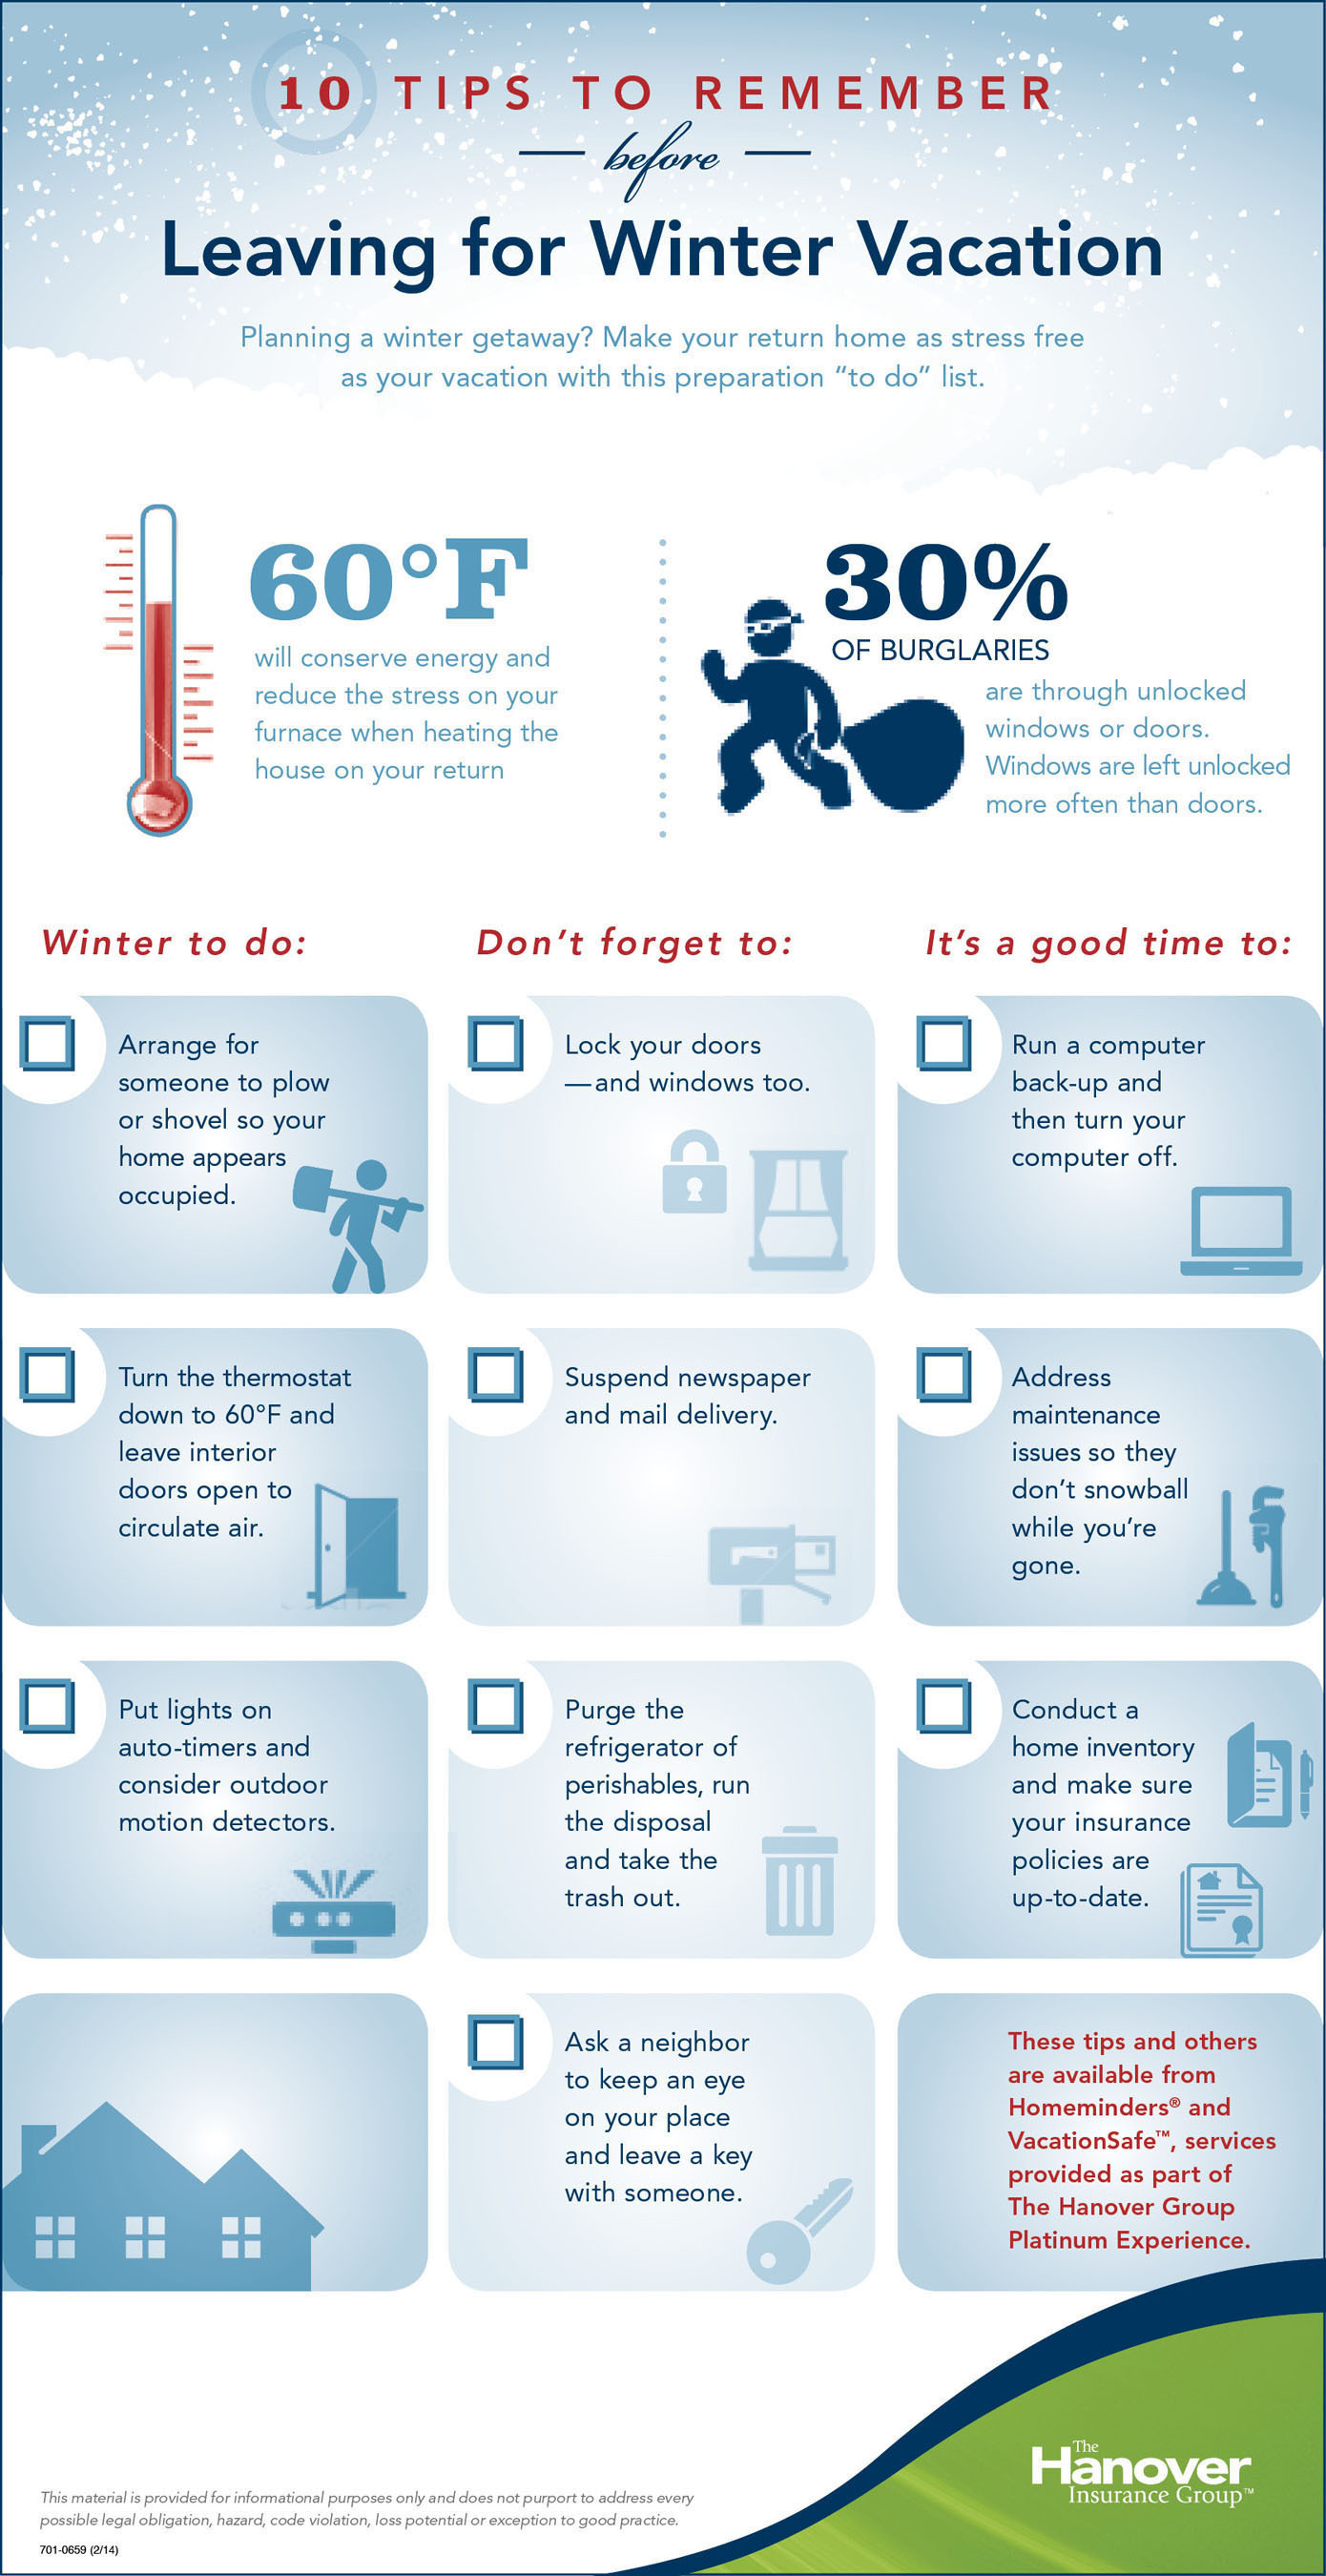 10 Winter Vacation Tips to Get Your Home Ready Before You Get Away. (PRNewsFoto/The Hanover Insurance Group, ...